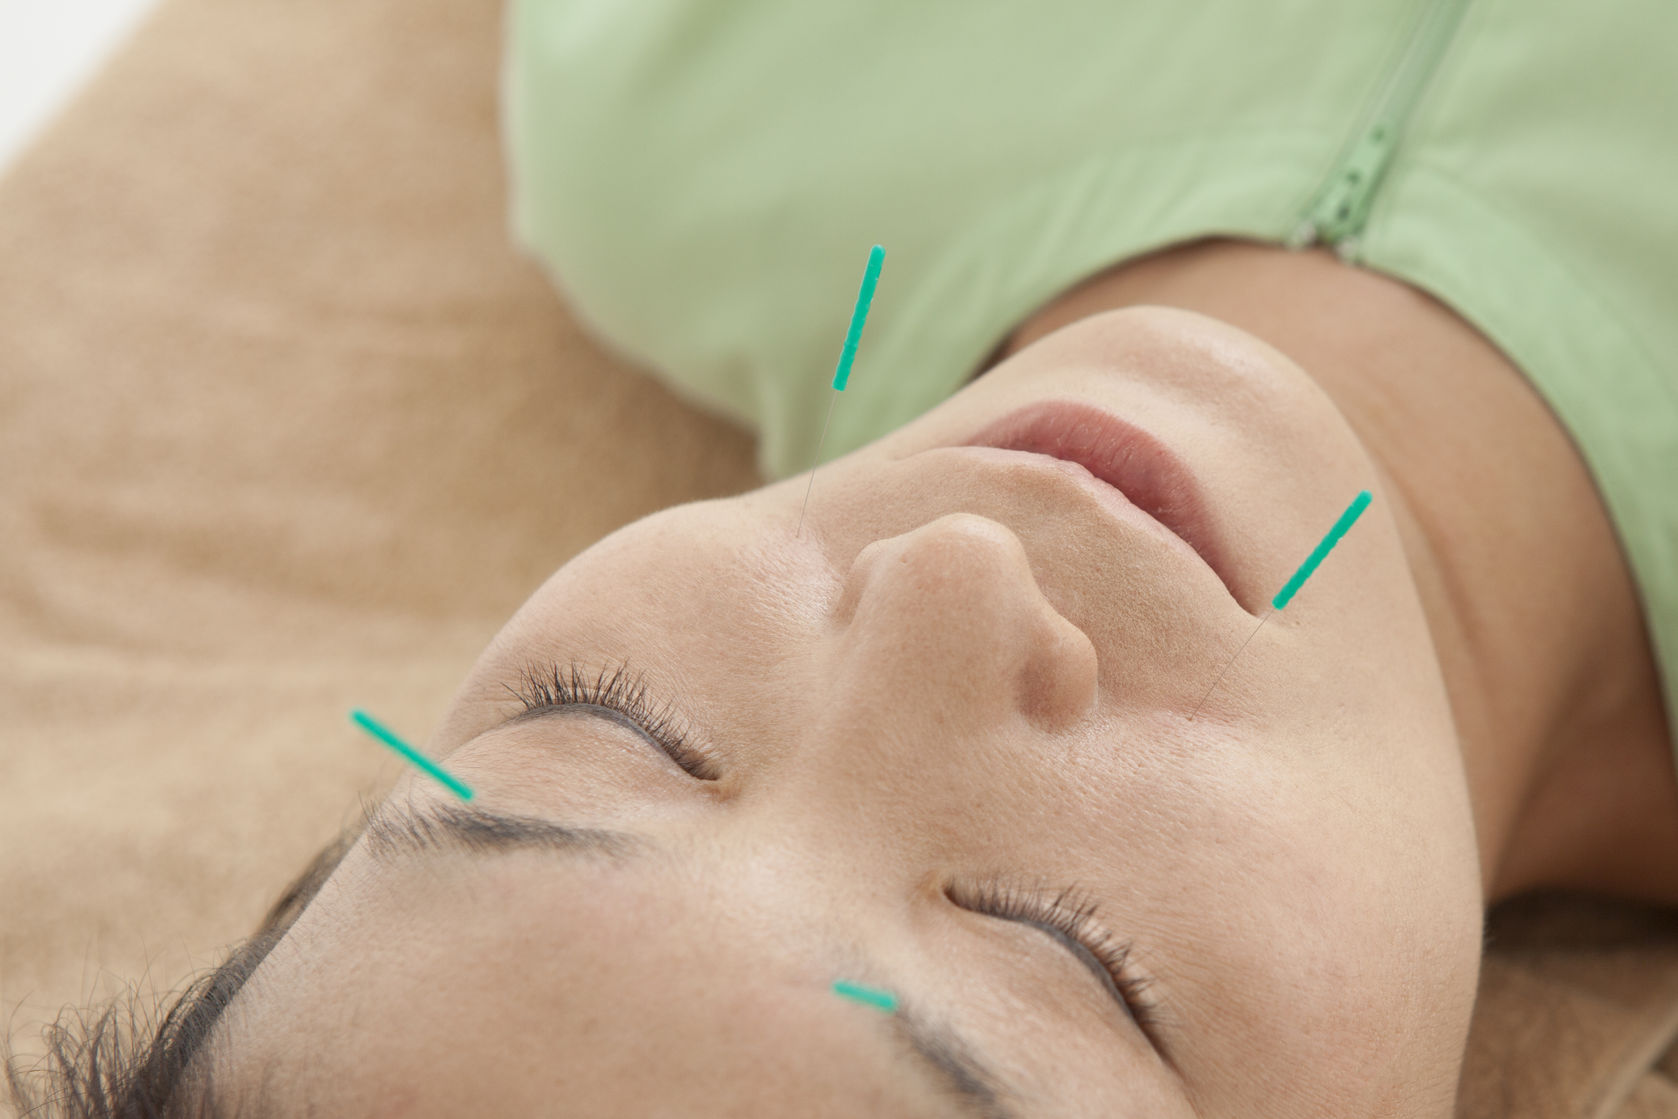 acupuncture improves cognition after stroke